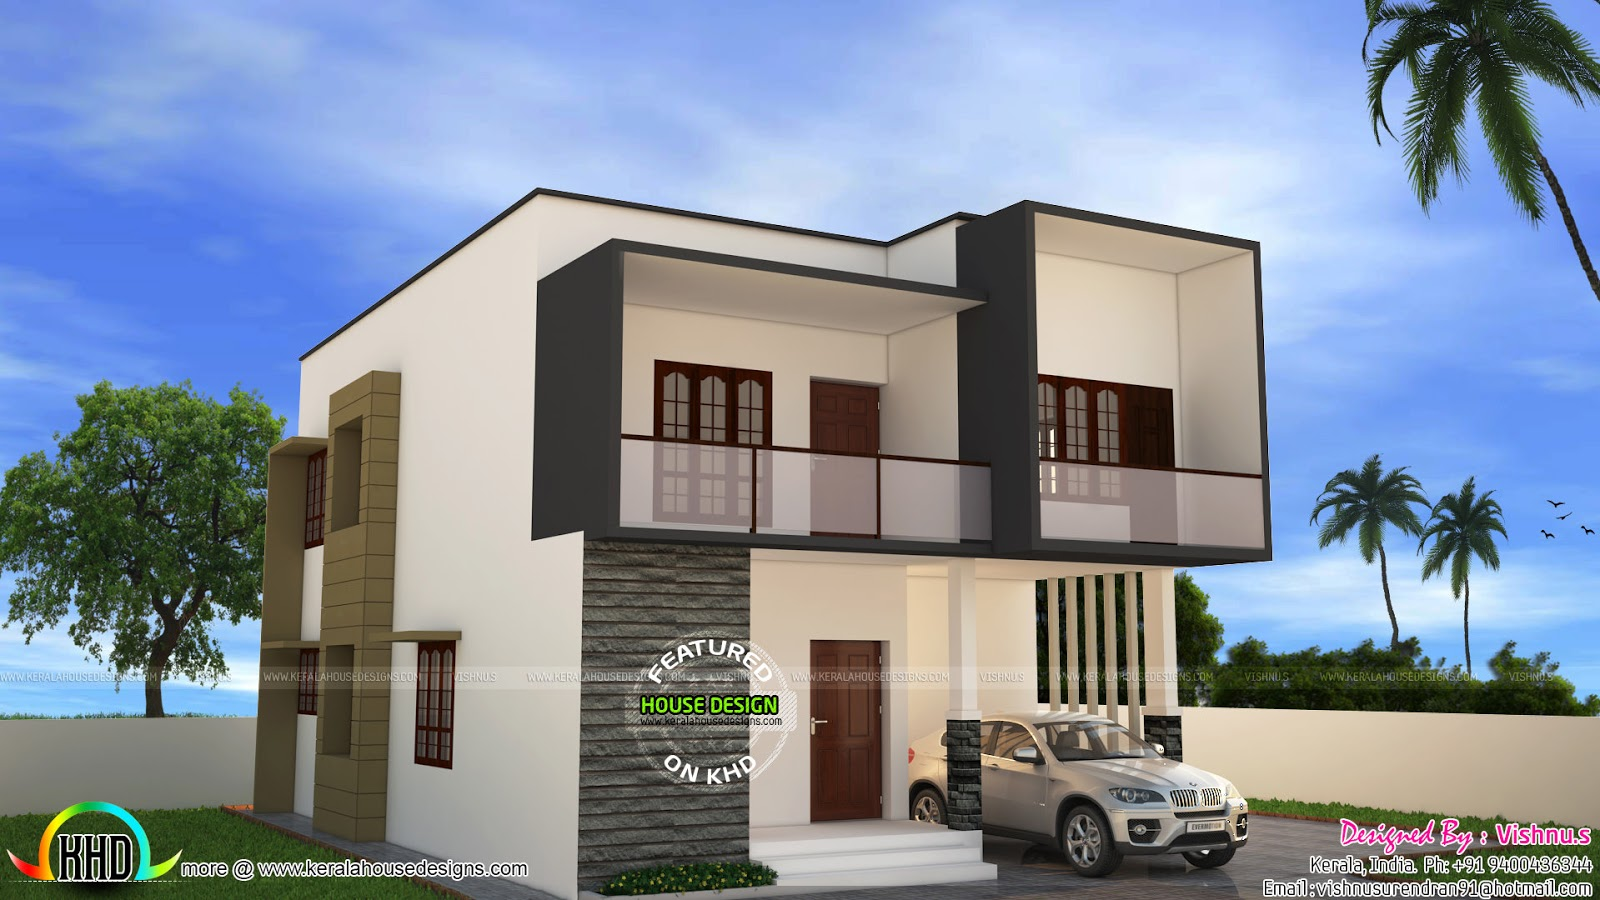 Simple modern house by vishnu s home design decor for Modern house plans with photos